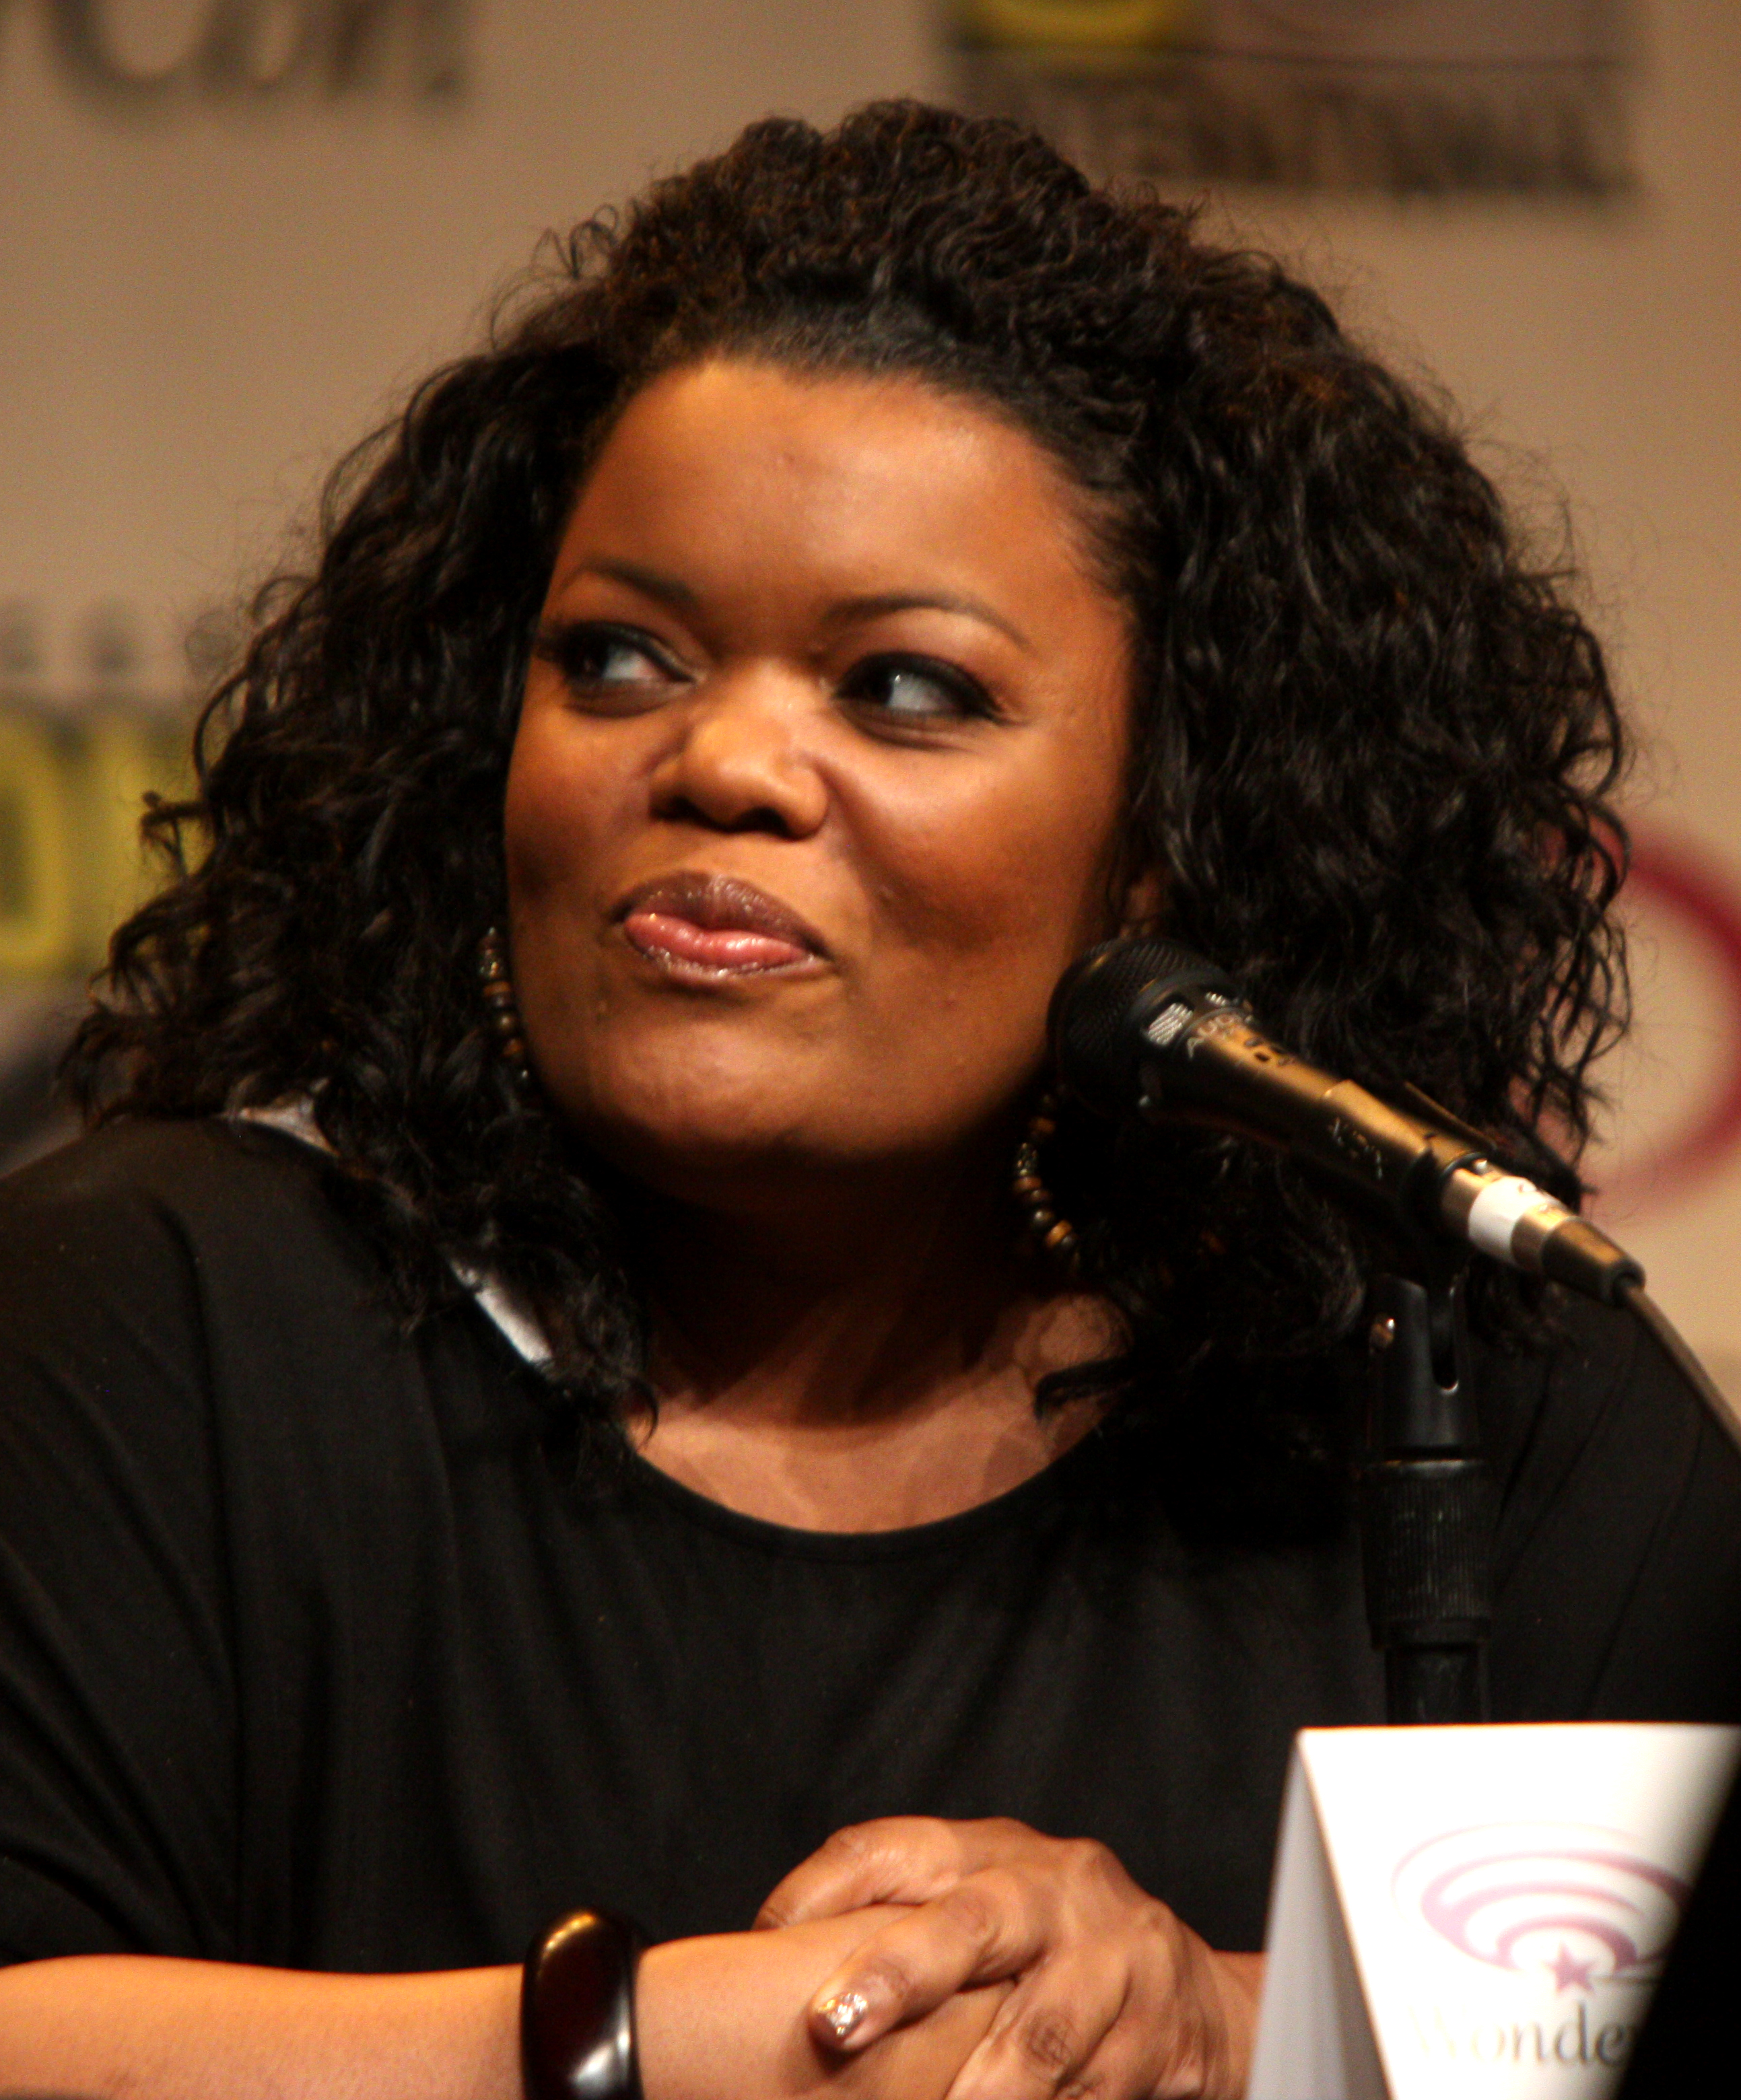 yvette nicole brown walking deadyvette nicole brown donald glover, yvette nicole brown weight loss, yvette nicole brown walking dead, yvette nicole brown singing, yvette nicole brown drake and josh, yvette nicole brown instagram, yvette nicole brown, yvette nicole brown weight loss 2014, yvette nicole brown married, yvette nicole brown twitter, yvette nicole brown community, yvette nicole brown 2015, yvette nicole brown lose weight, yvette nicole brown leaves community, yvette nicole brown wiki, yvette nicole brown losing weight, yvette nicole brown the office, yvette nicole brown bojack horseman, yvette nicole brown net worth, yvette nicole brown talking dead